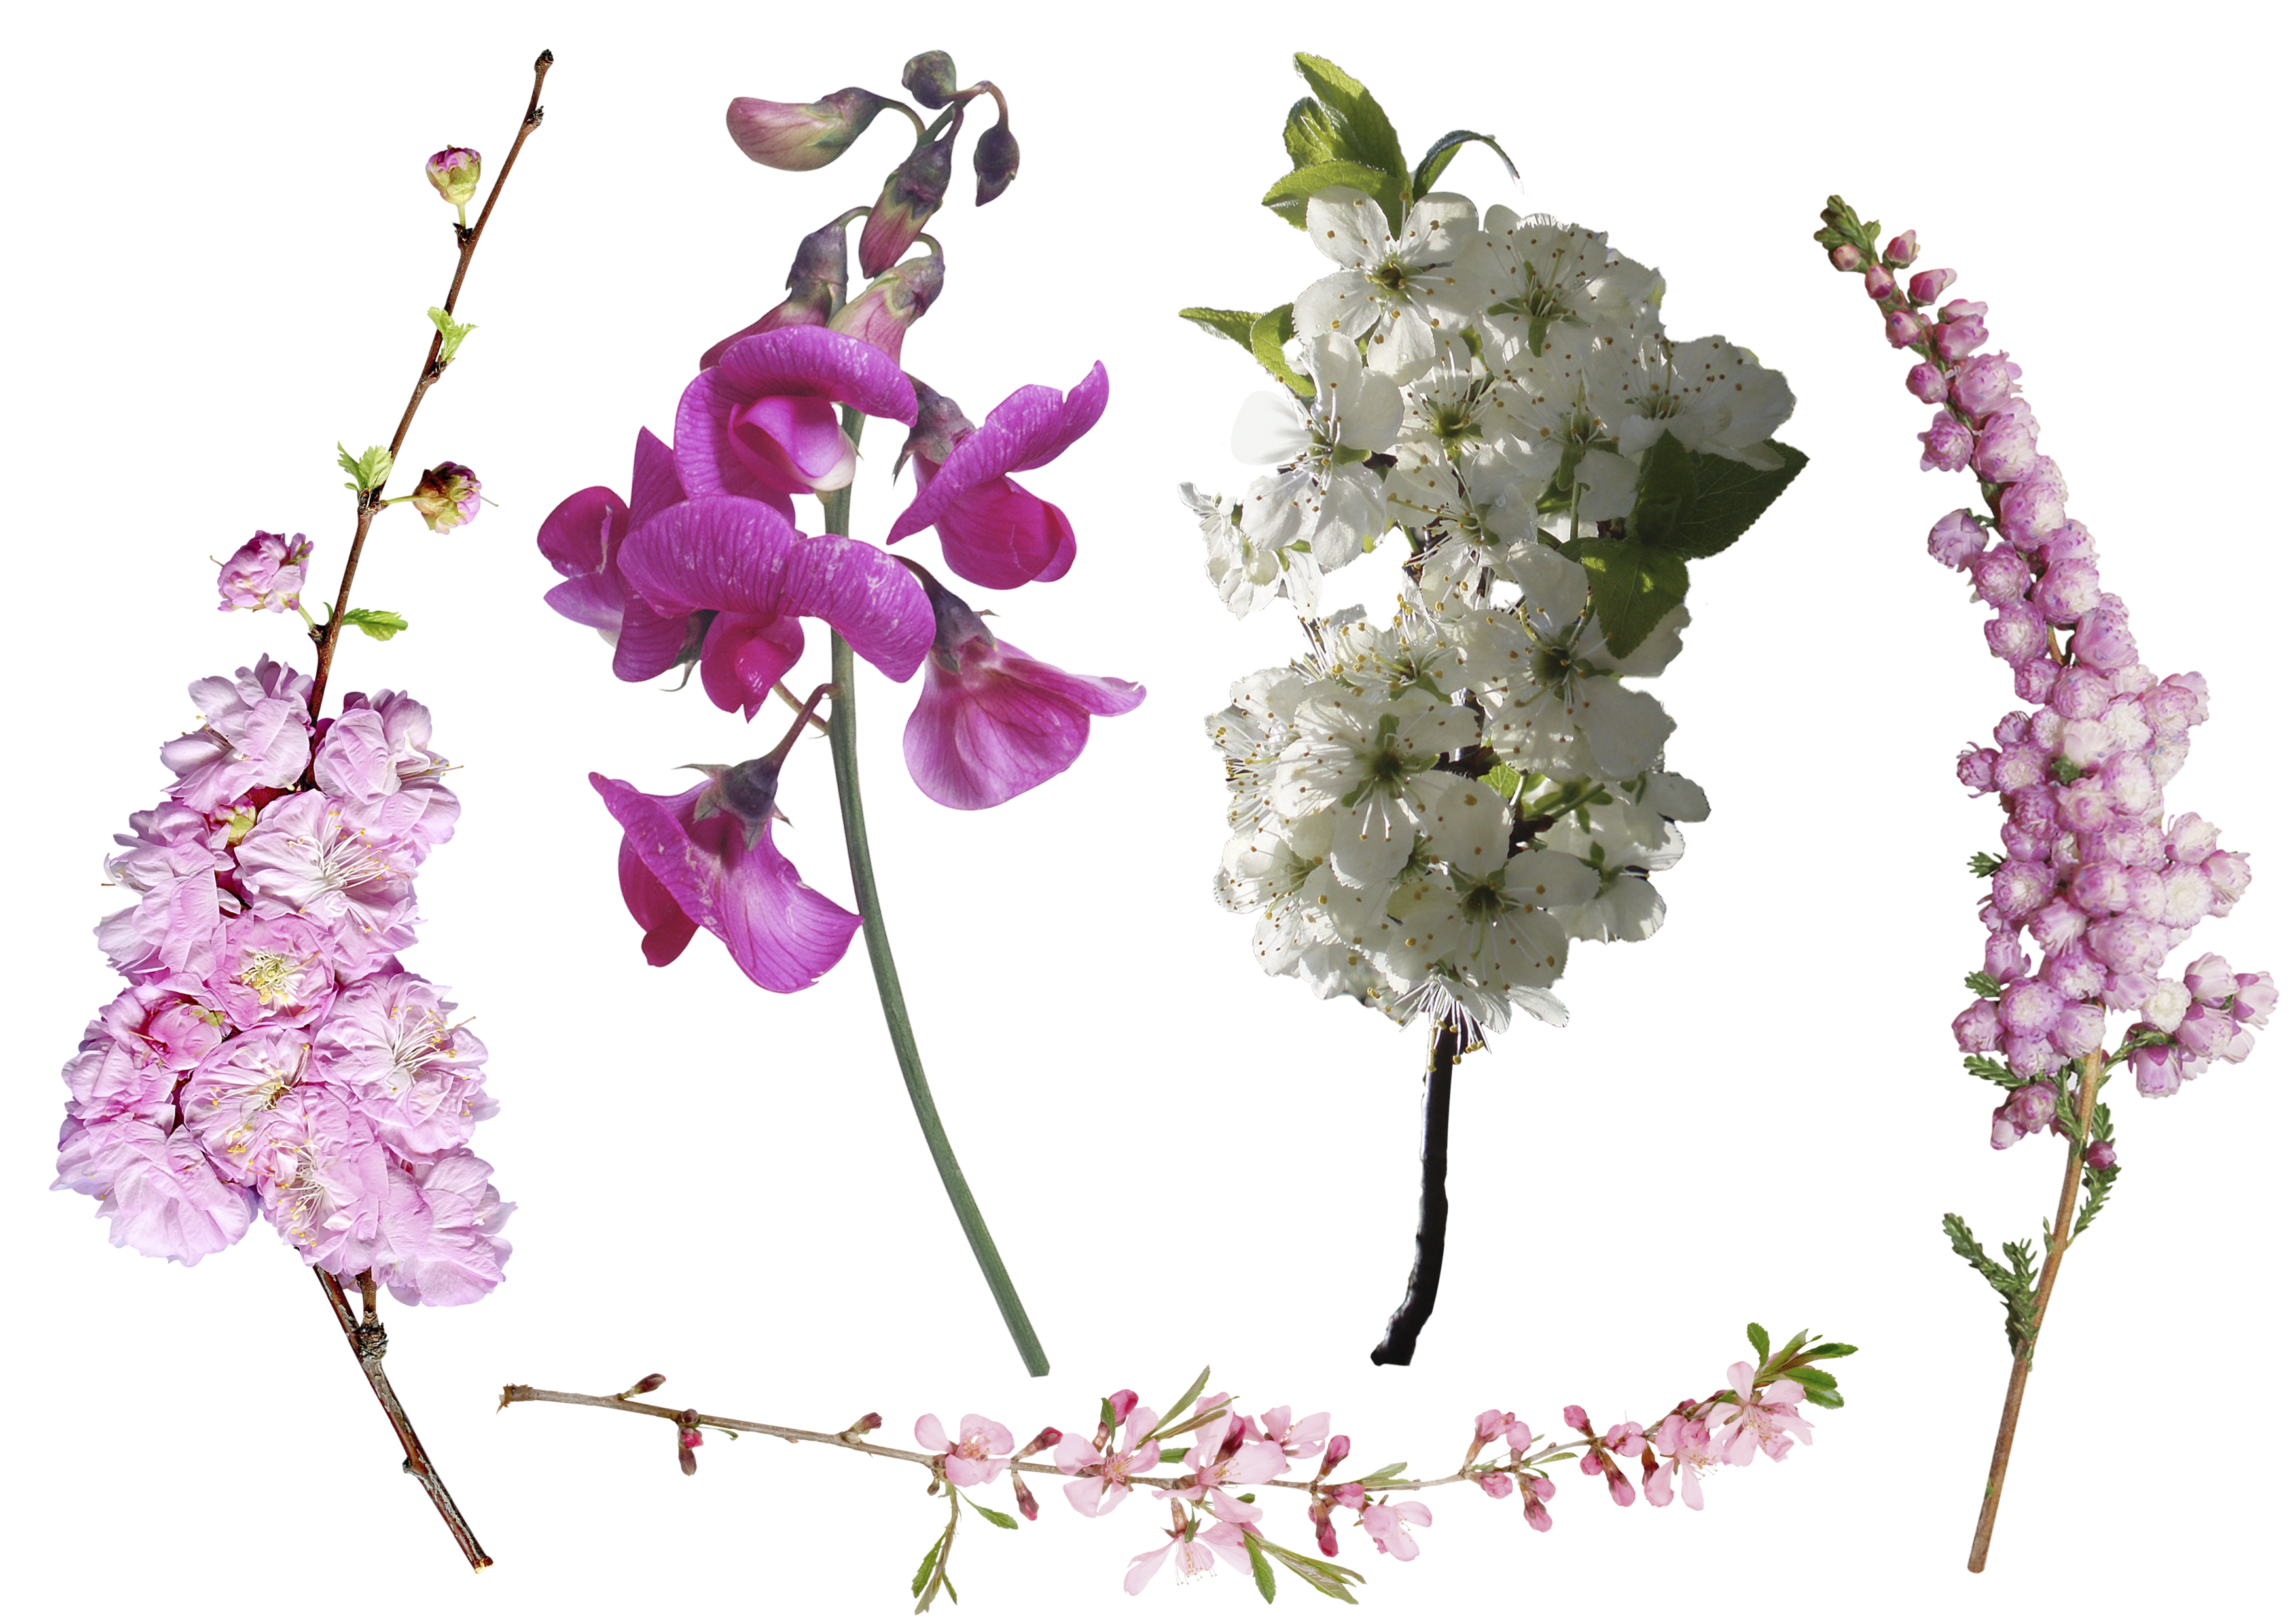 Flower overlay png. Petal foreground tree transprent